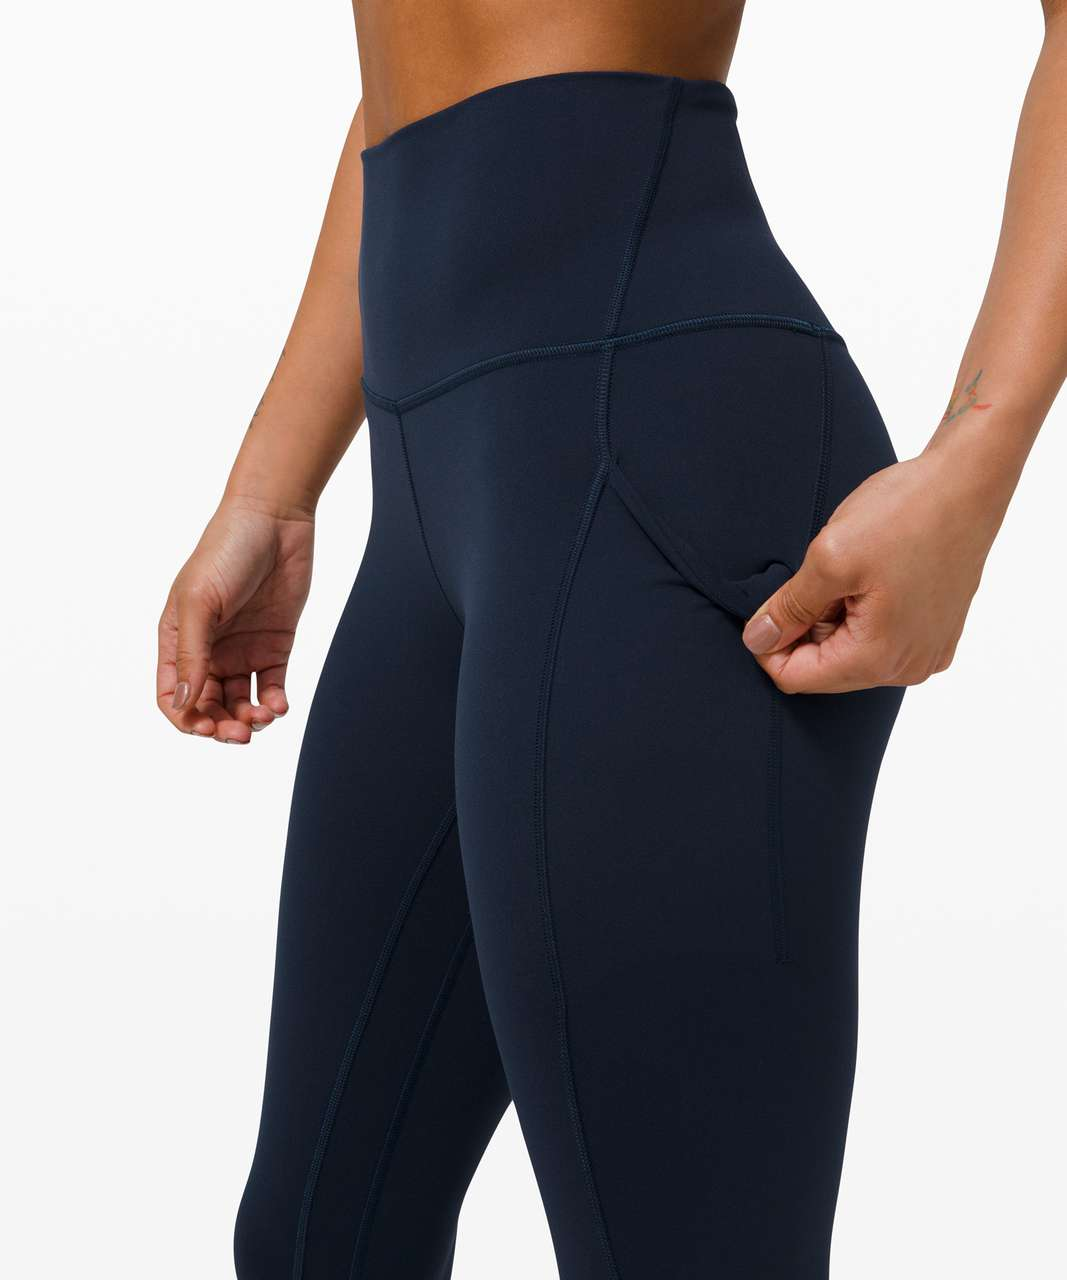 """Lululemon Align High Rise Pant with Pockets 25"""" - True Navy"""